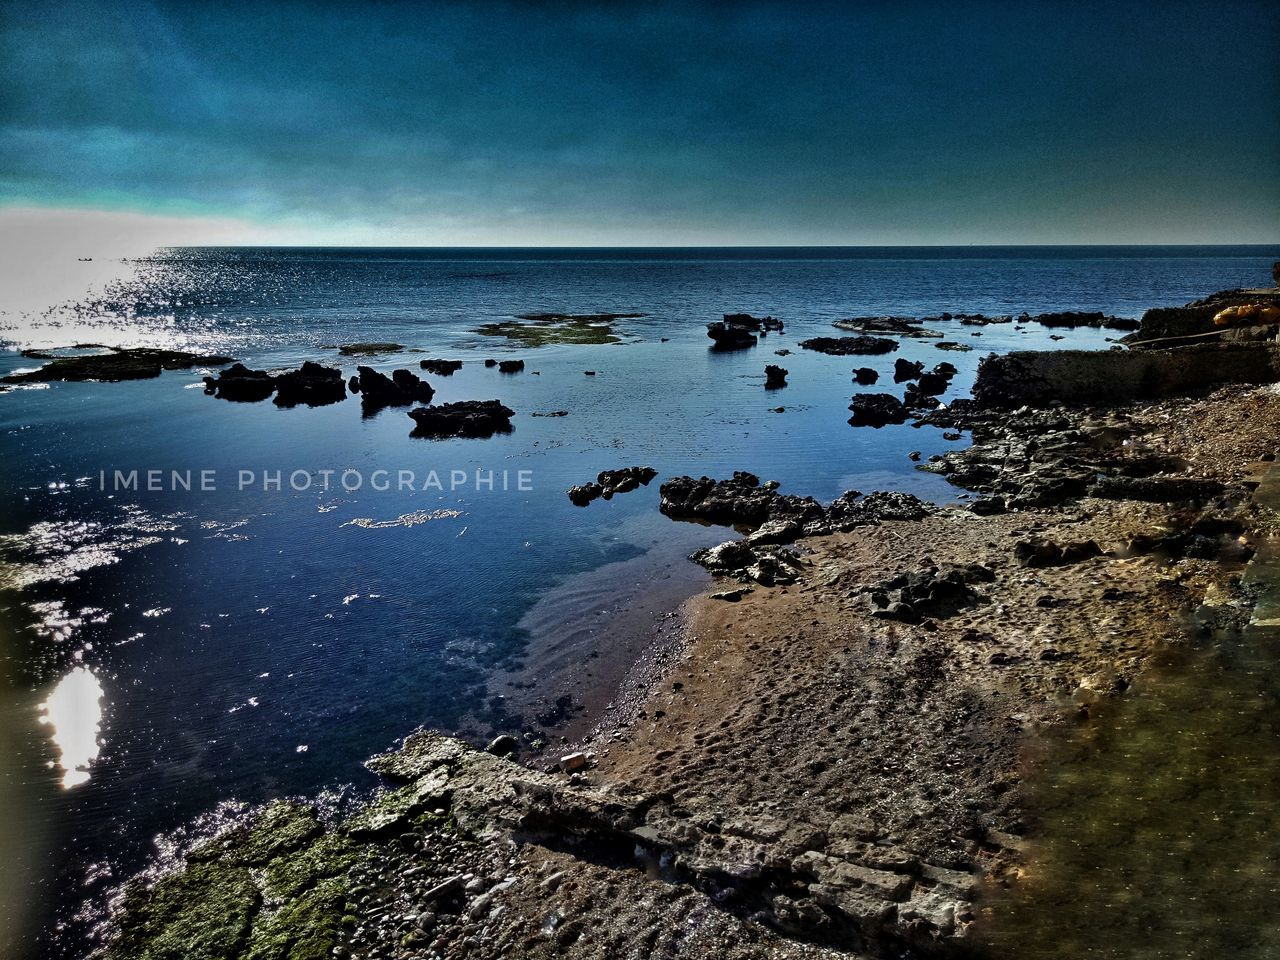 sea, horizon over water, water, beauty in nature, nature, scenics, rock - object, beach, sky, no people, tranquil scene, tranquility, day, outdoors